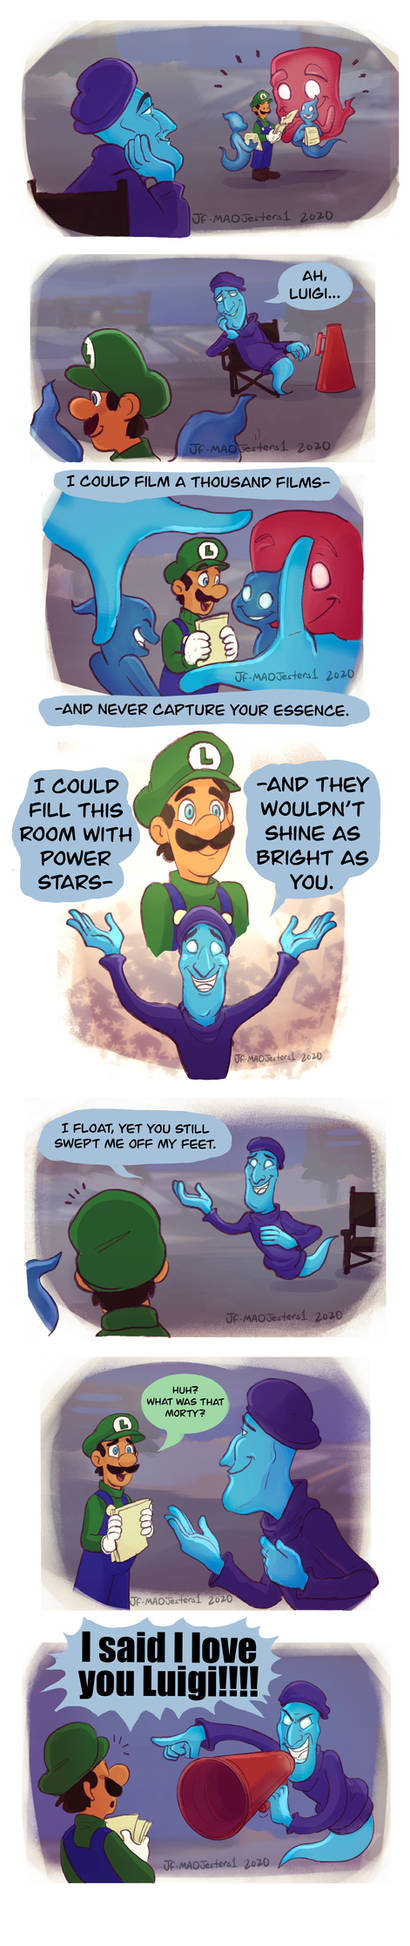 LM3-What words to use to describe Luigi